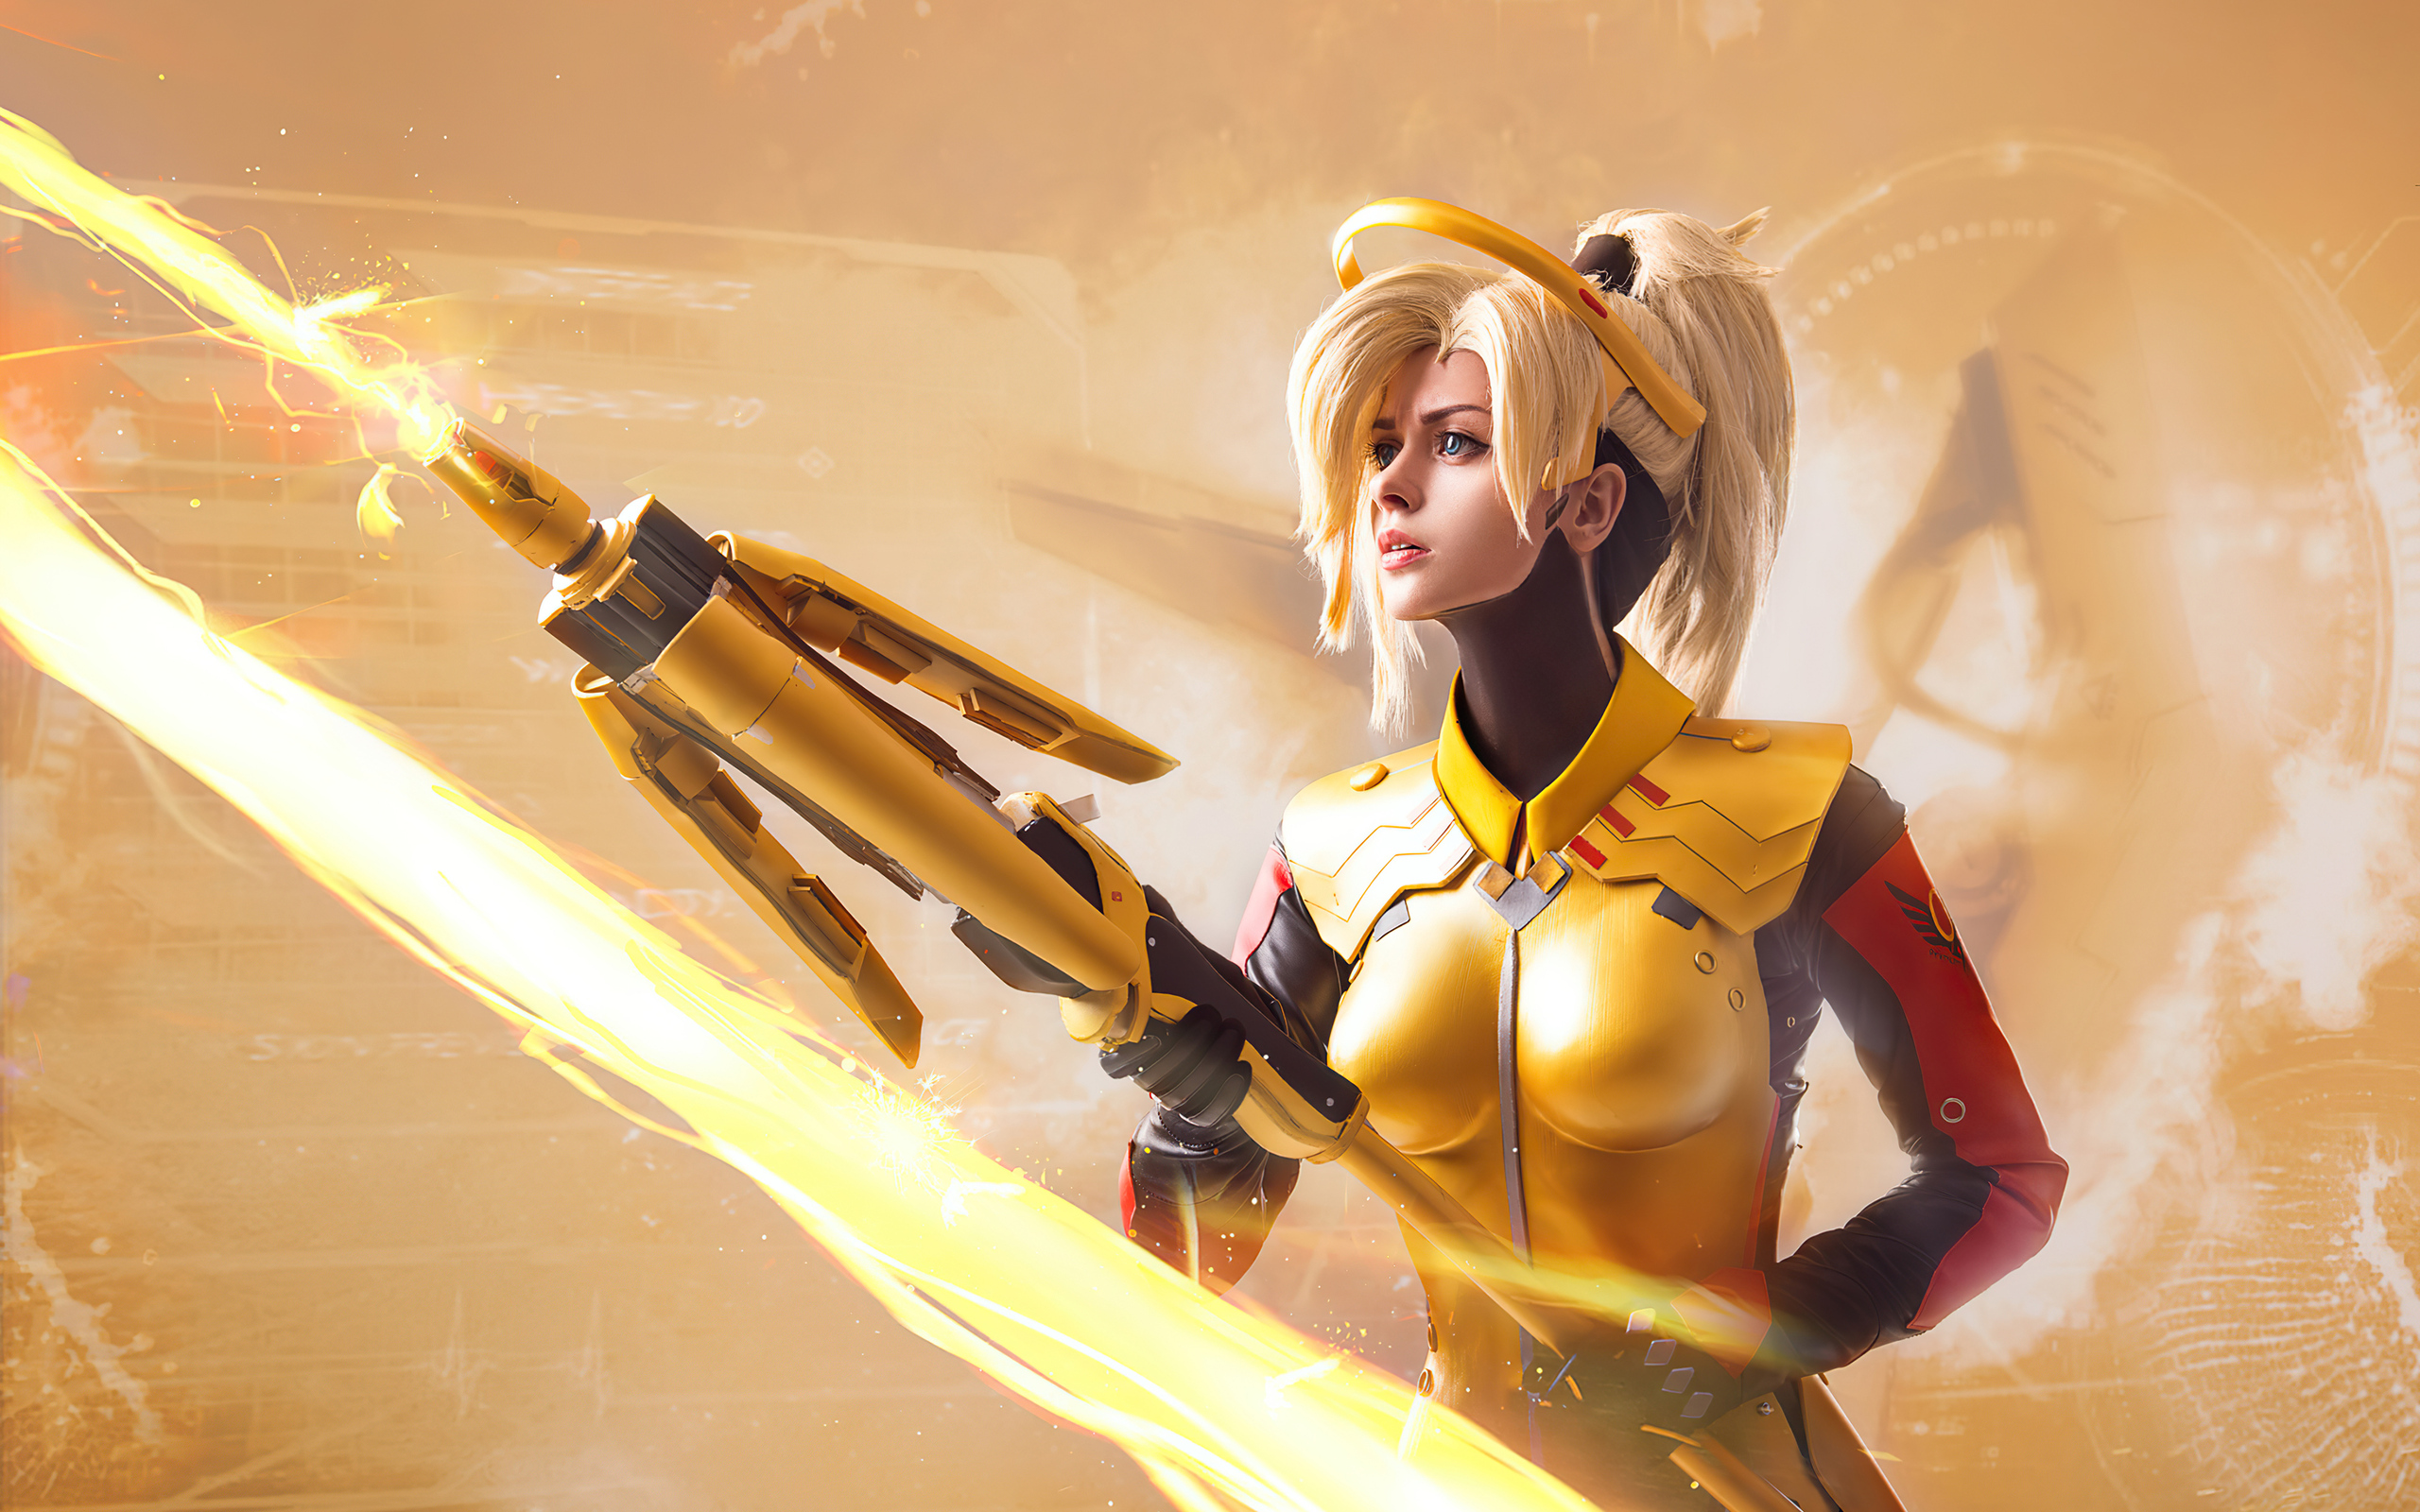 amazing-mercy-overwatch-4k-sn.jpg